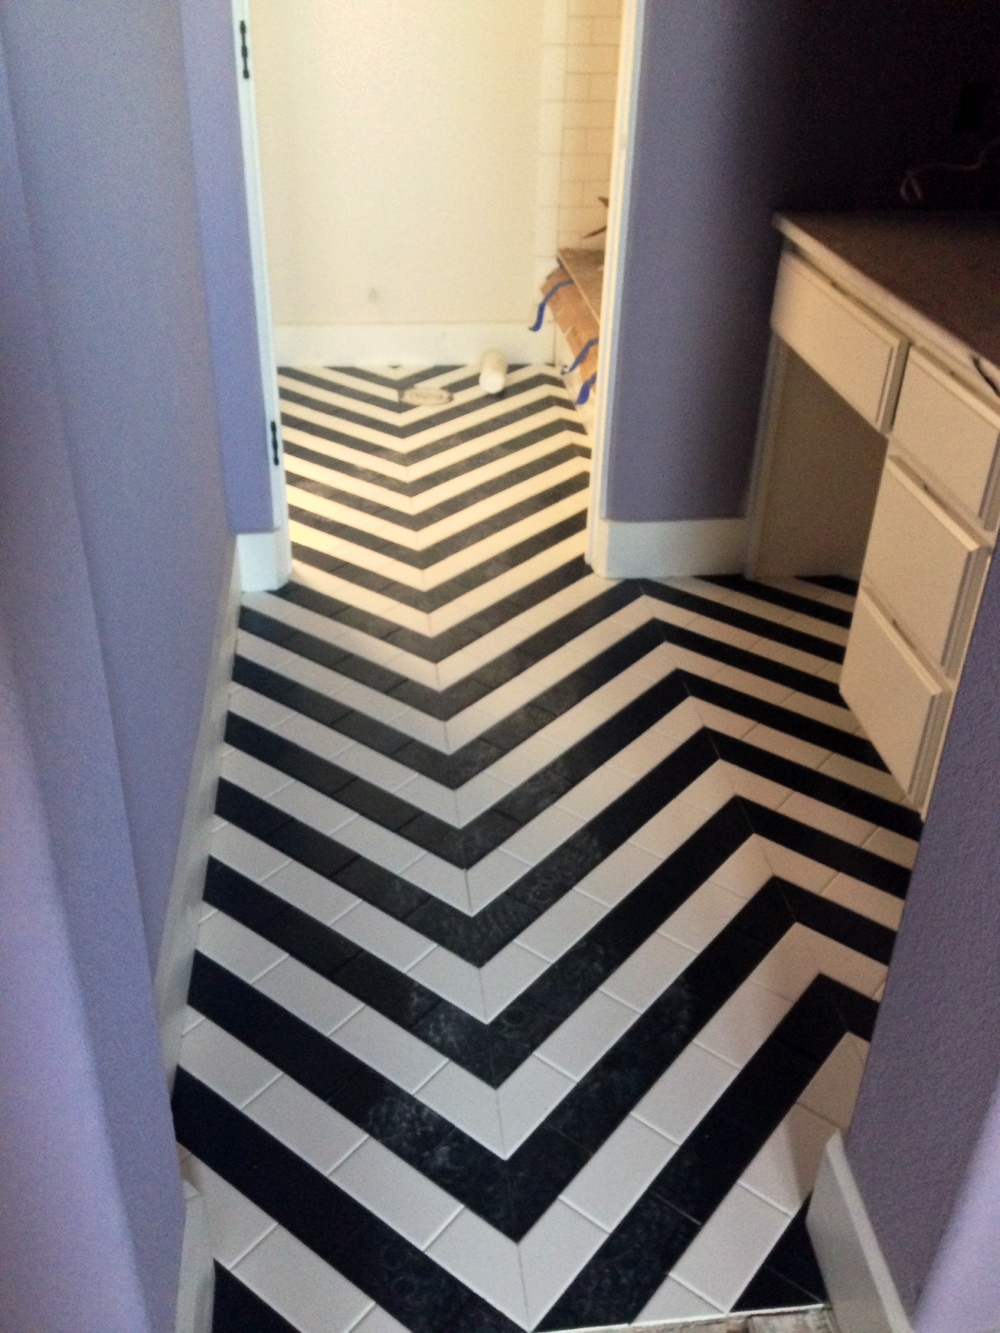 black and white herringbone tile.JPG